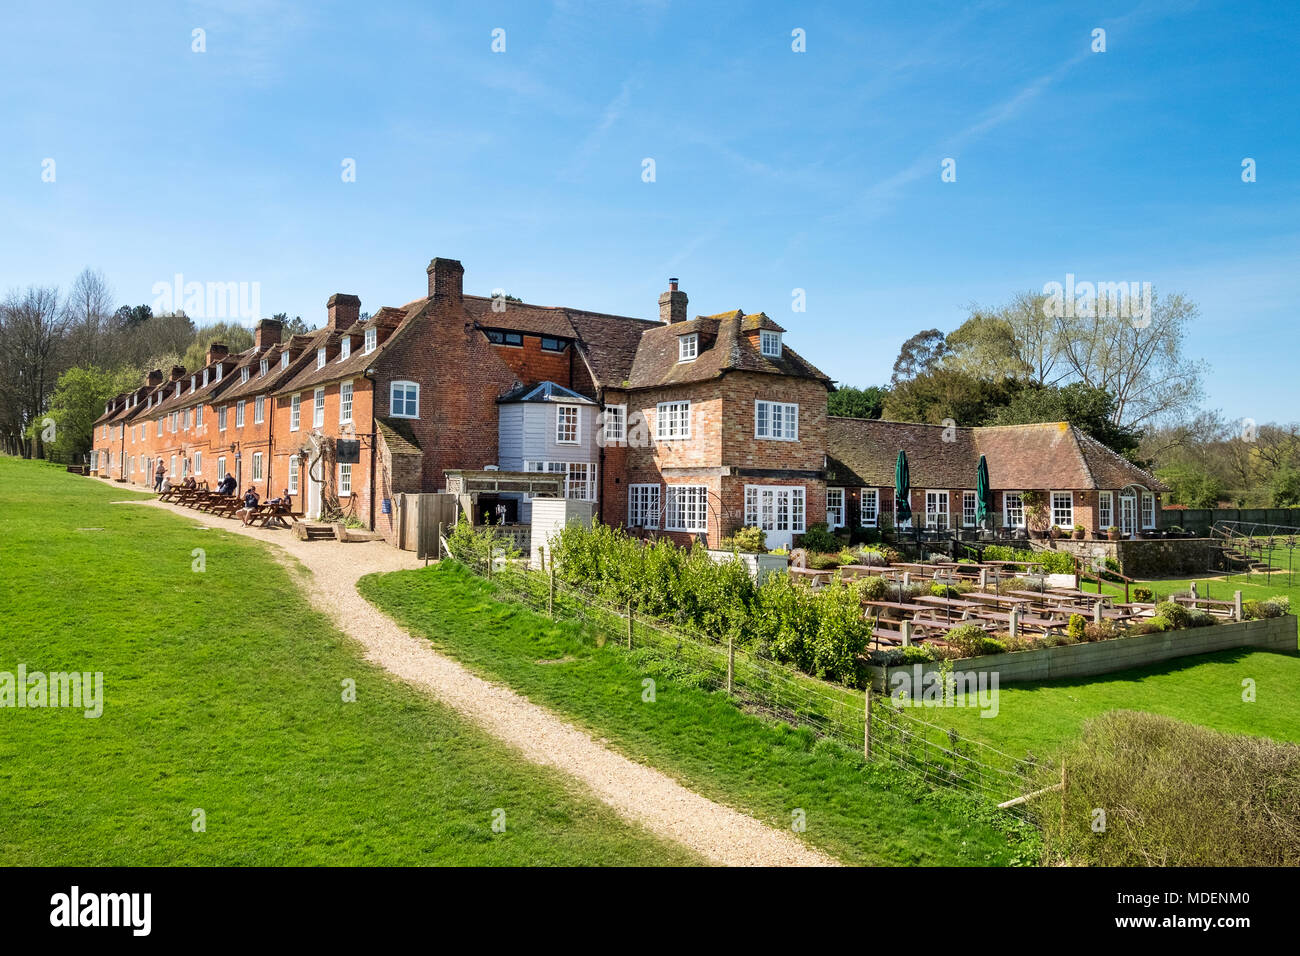 Master Builders pub and hotel, Buckler's Hard, Beaulieu - Stock Image